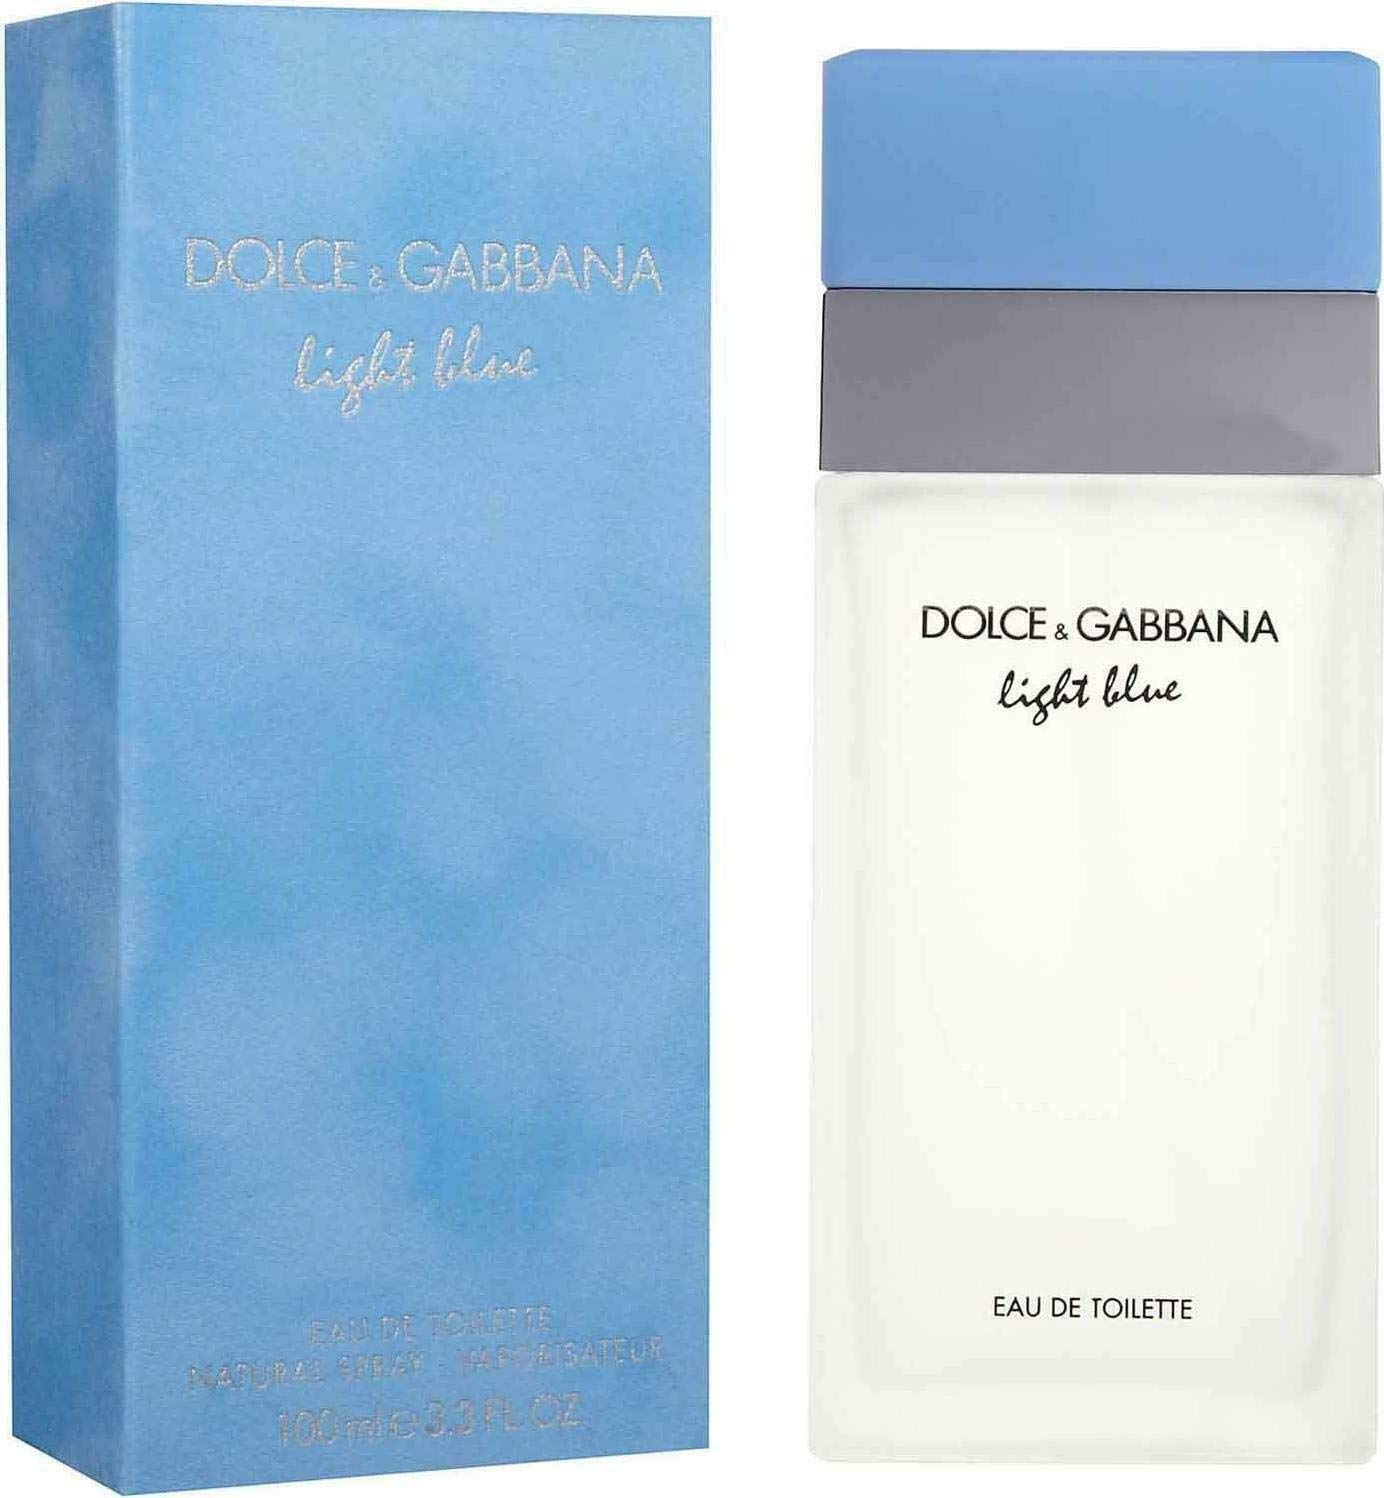 D G Light Blue By Dolce Gabbana For Women Eau De Toilette Spray 3 3 Ounces Dolce And Gabbana Light Blue Beauty